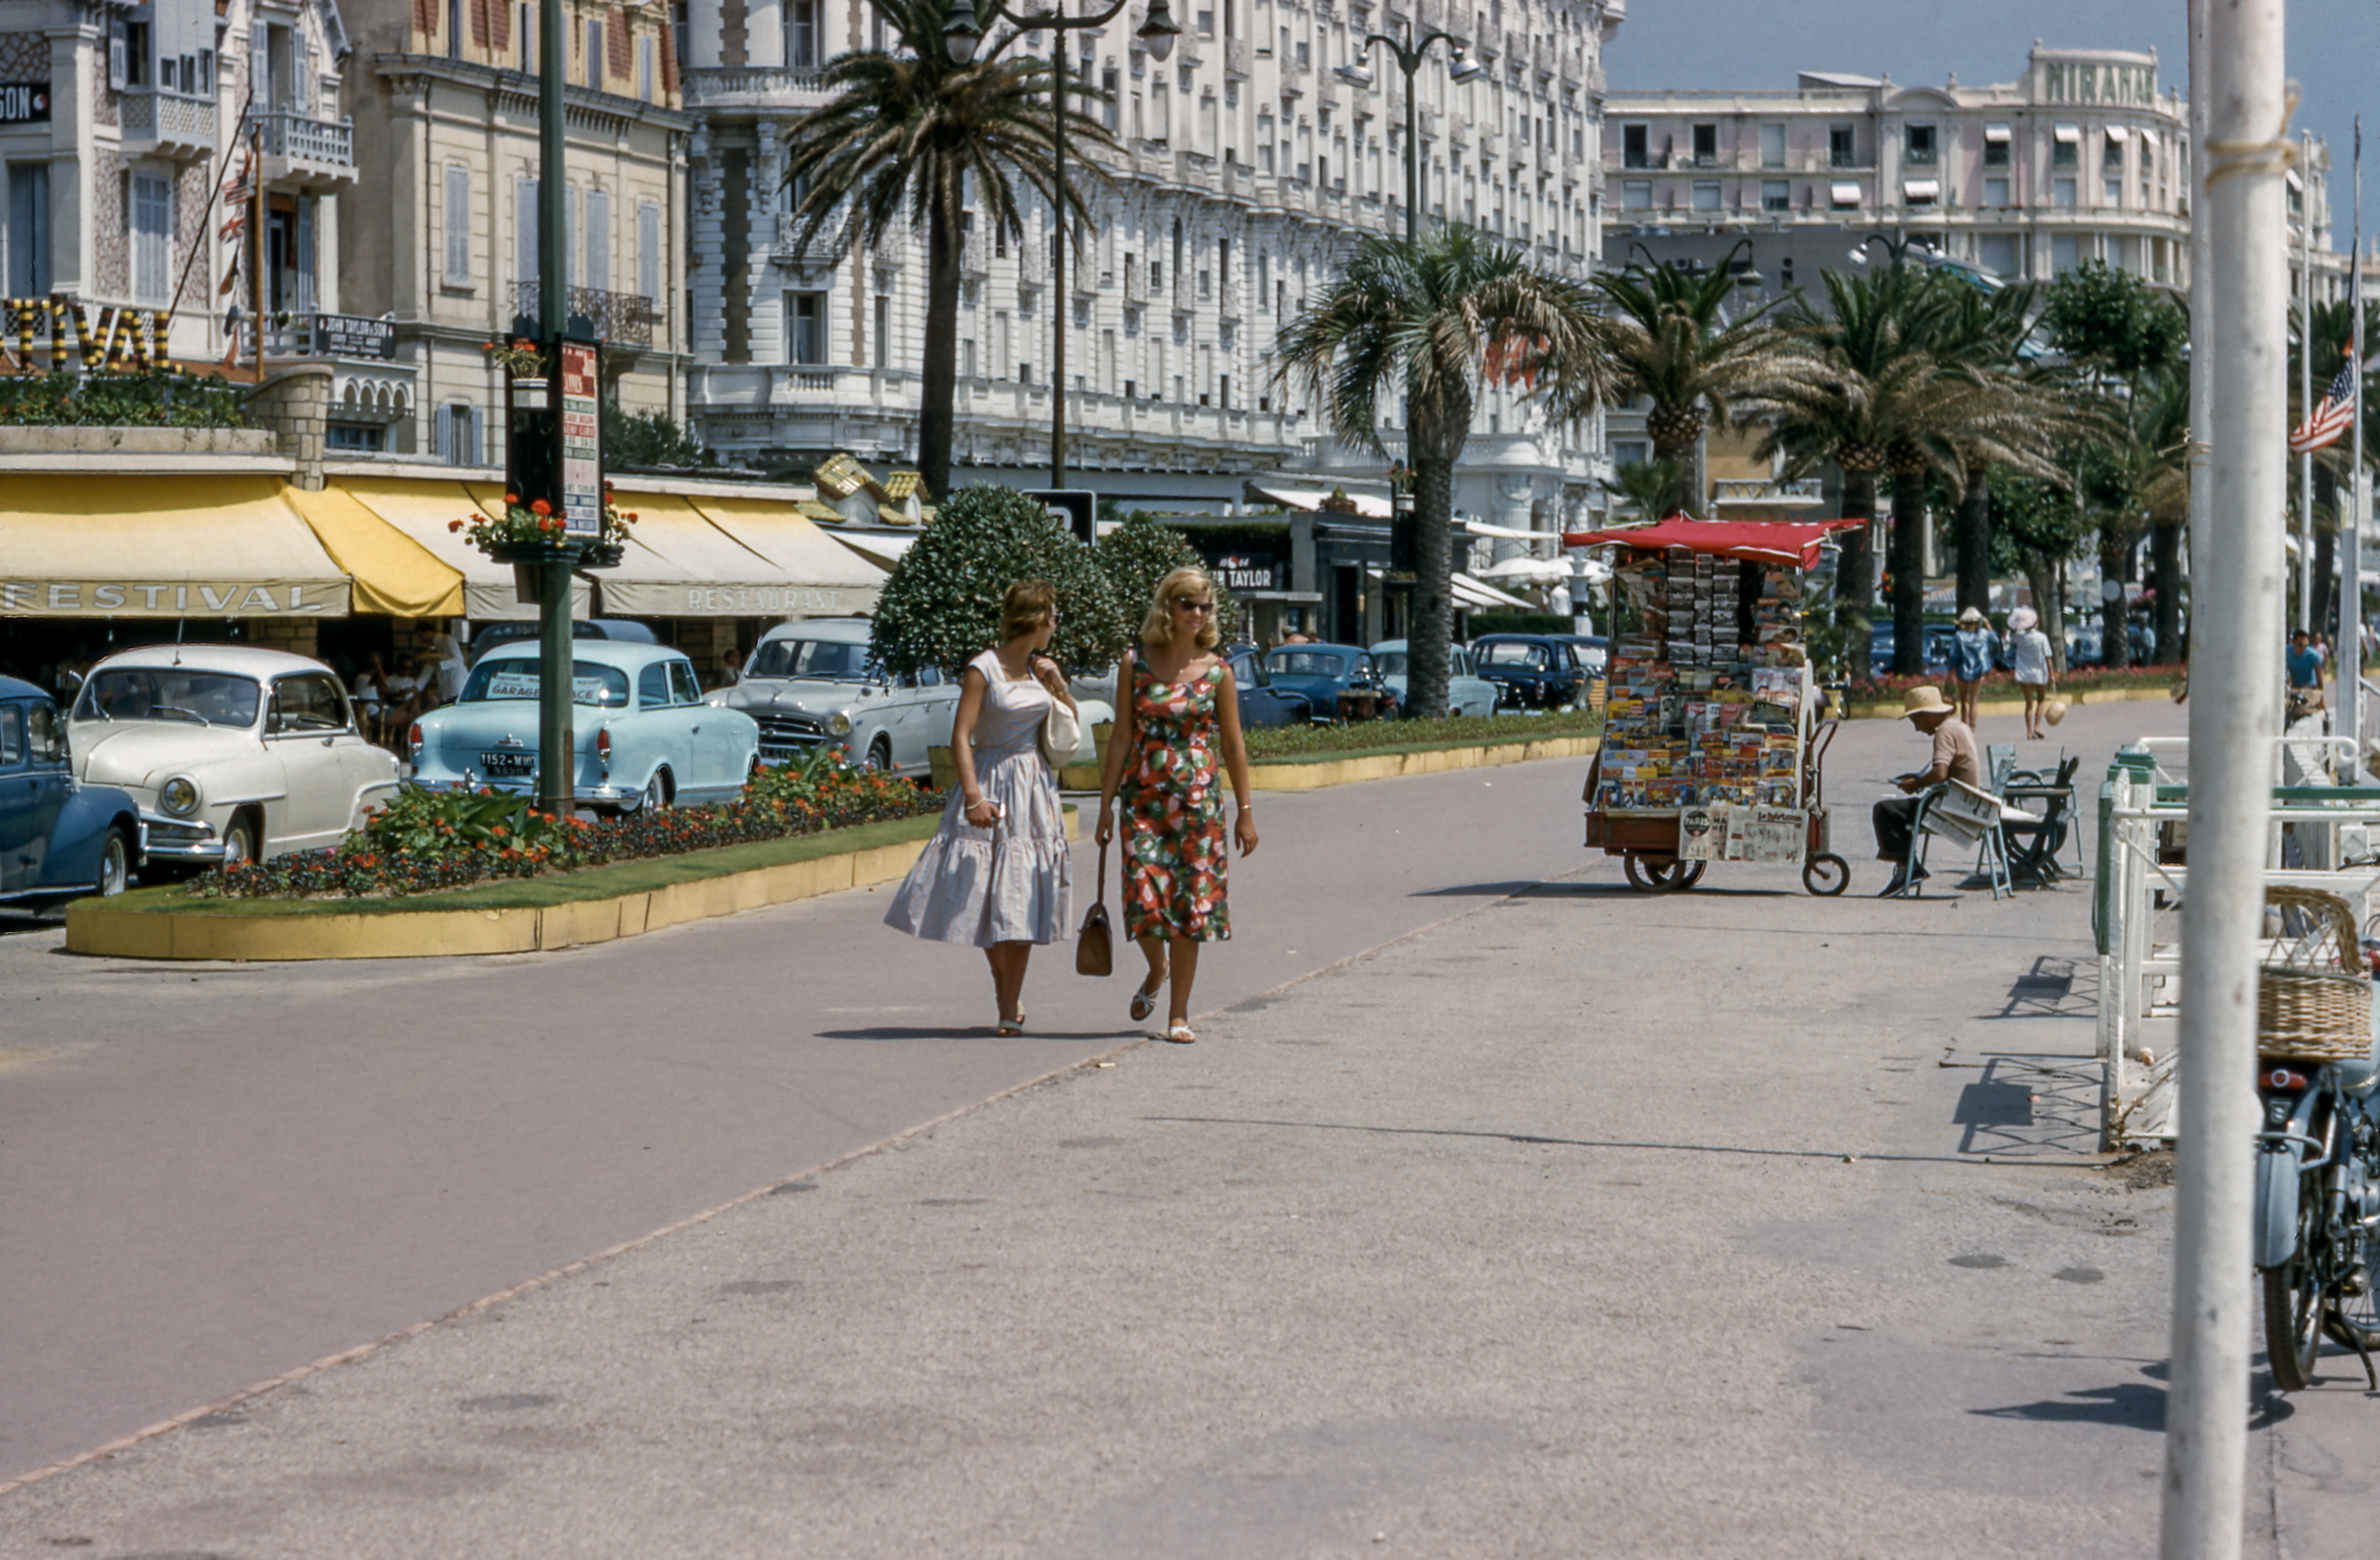 Vintage shot of women in retro outfits walking down a tropical street